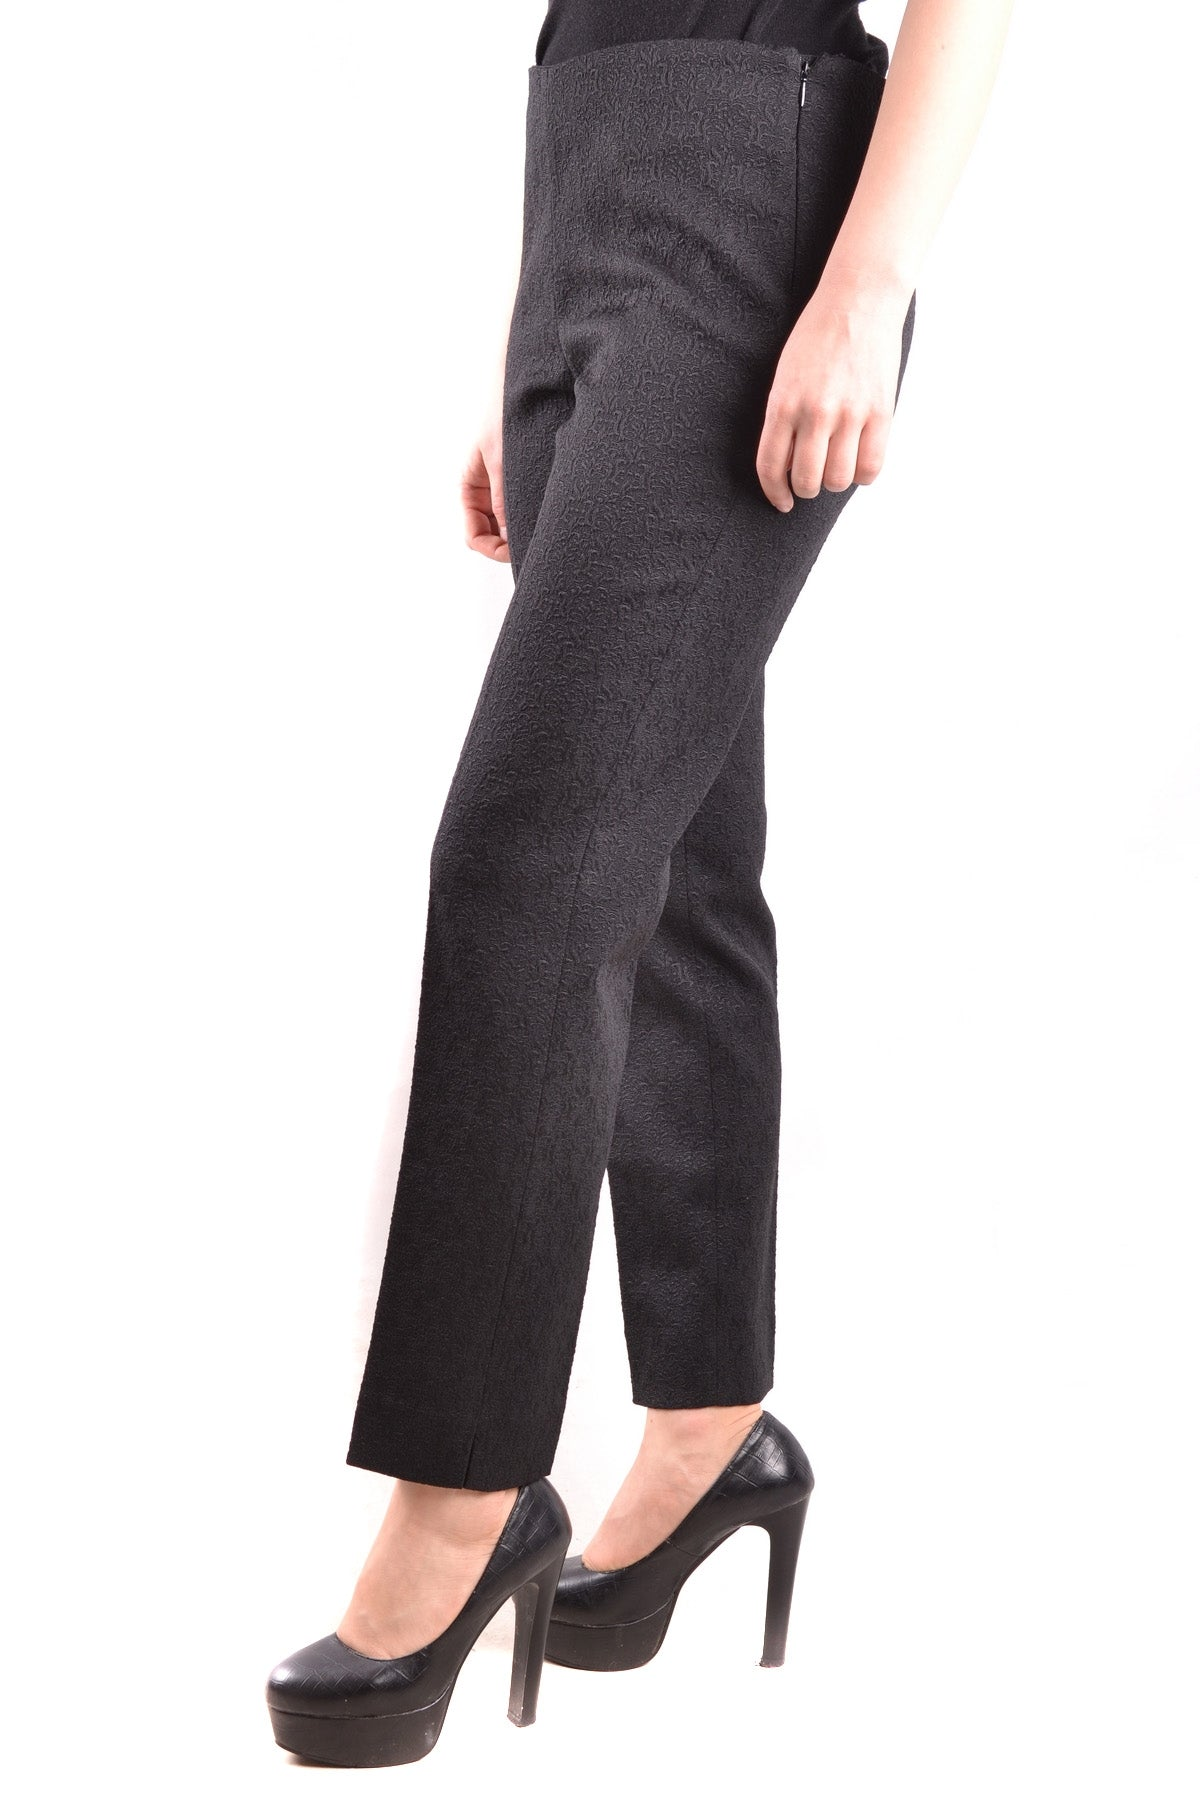 Trousers Pt01/Pt05-Trousers - WOMAN-Product Details Terms: New With LabelYear: 2017Main Color: BlackGender: WomanMade In: ItalySize: ItSeason: Fall / WinterClothing Type: TrousersComposition: Acetate 2%, Alpaca 10%, Cotton 39%, Polyester 44%, Tissue 5%-Keyomi-Sook